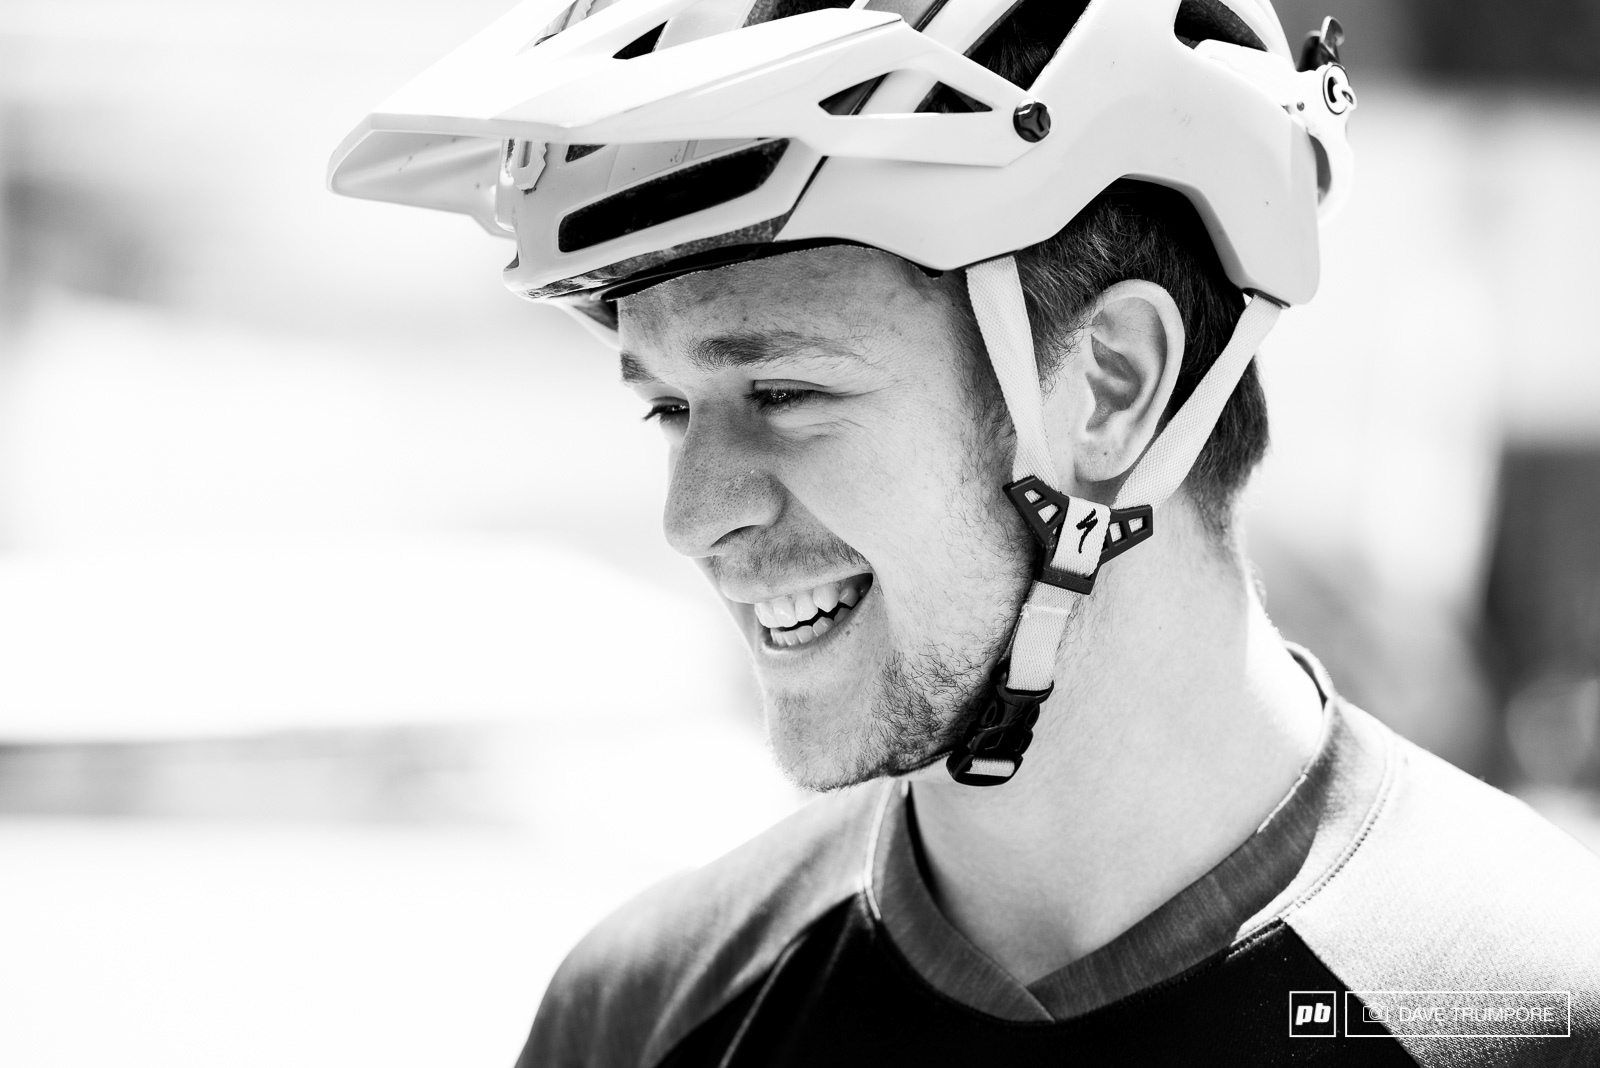 It was Troy Brosnan s Birthday on Wednesday and he was all smiles after walking a few of the phenomenal stages hidden in La Thuile s steep hillsides.